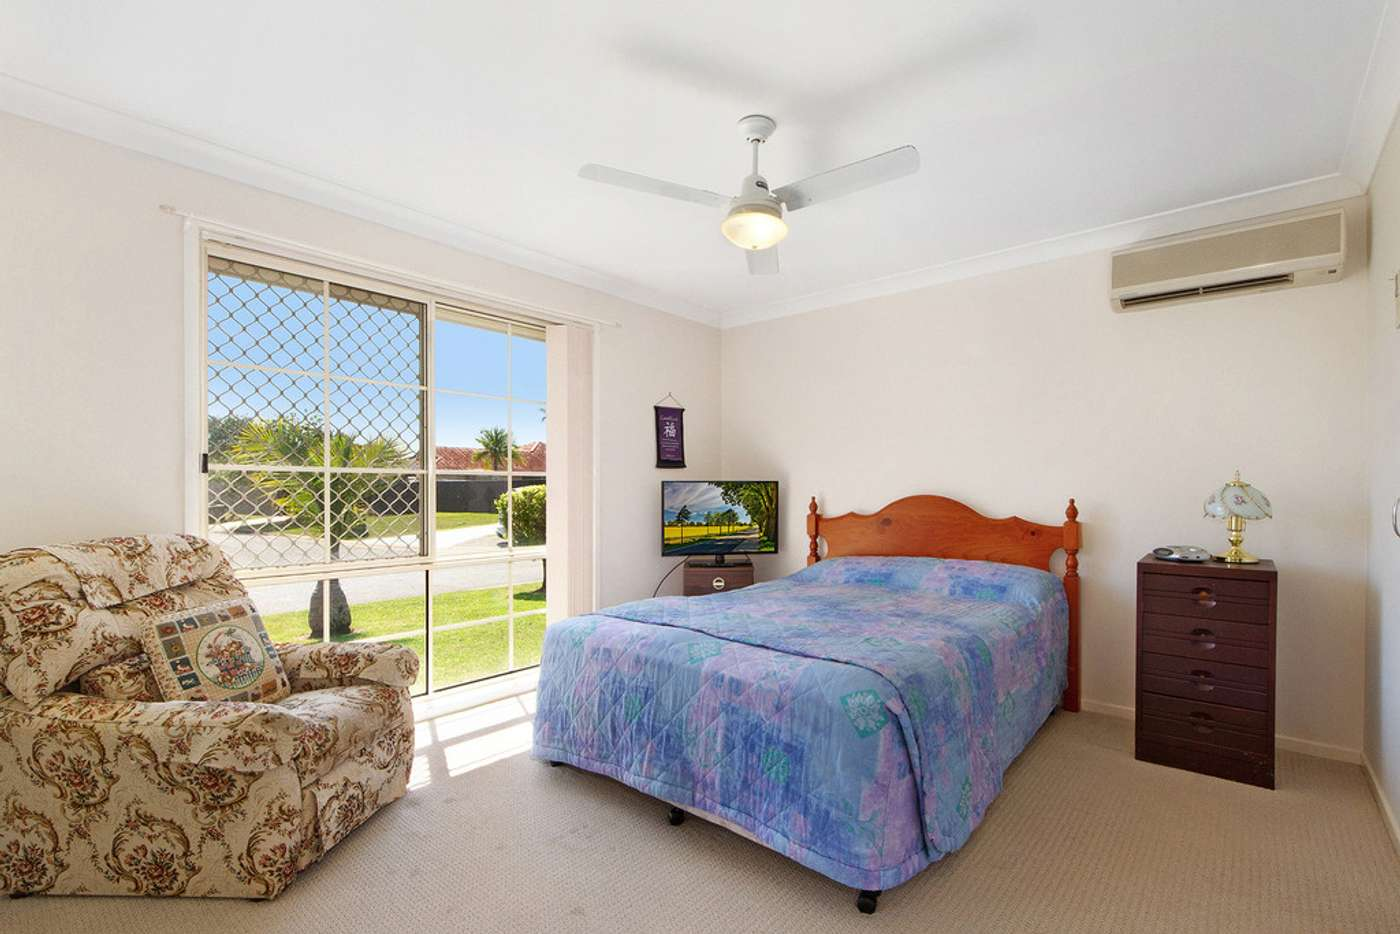 Fifth view of Homely house listing, 9 Talgai Place, Merrimac QLD 4226